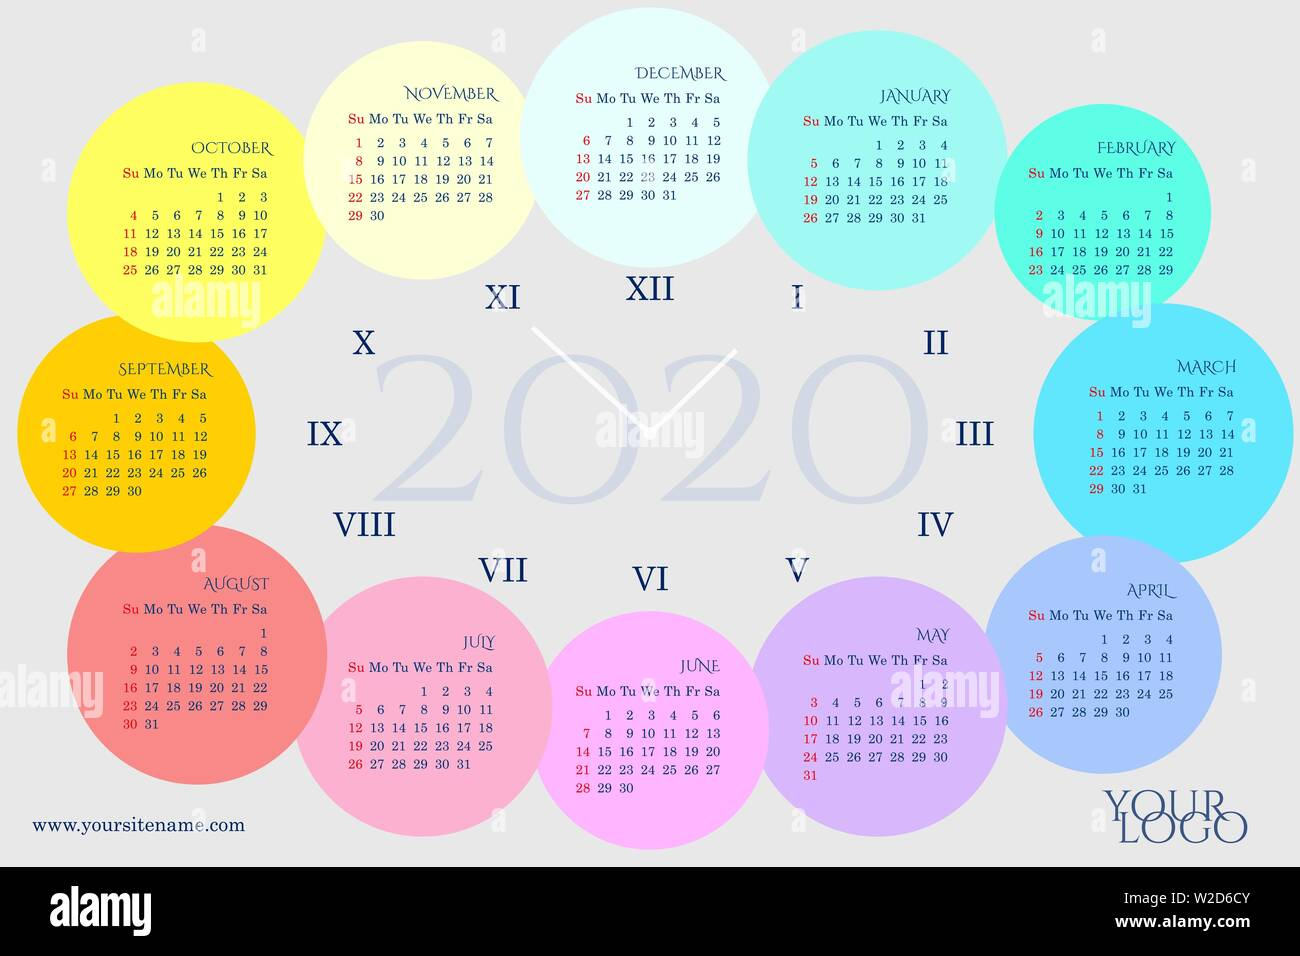 Roman Calendar 2020 Calendar 2020 in the clock form with months in rainbow circles